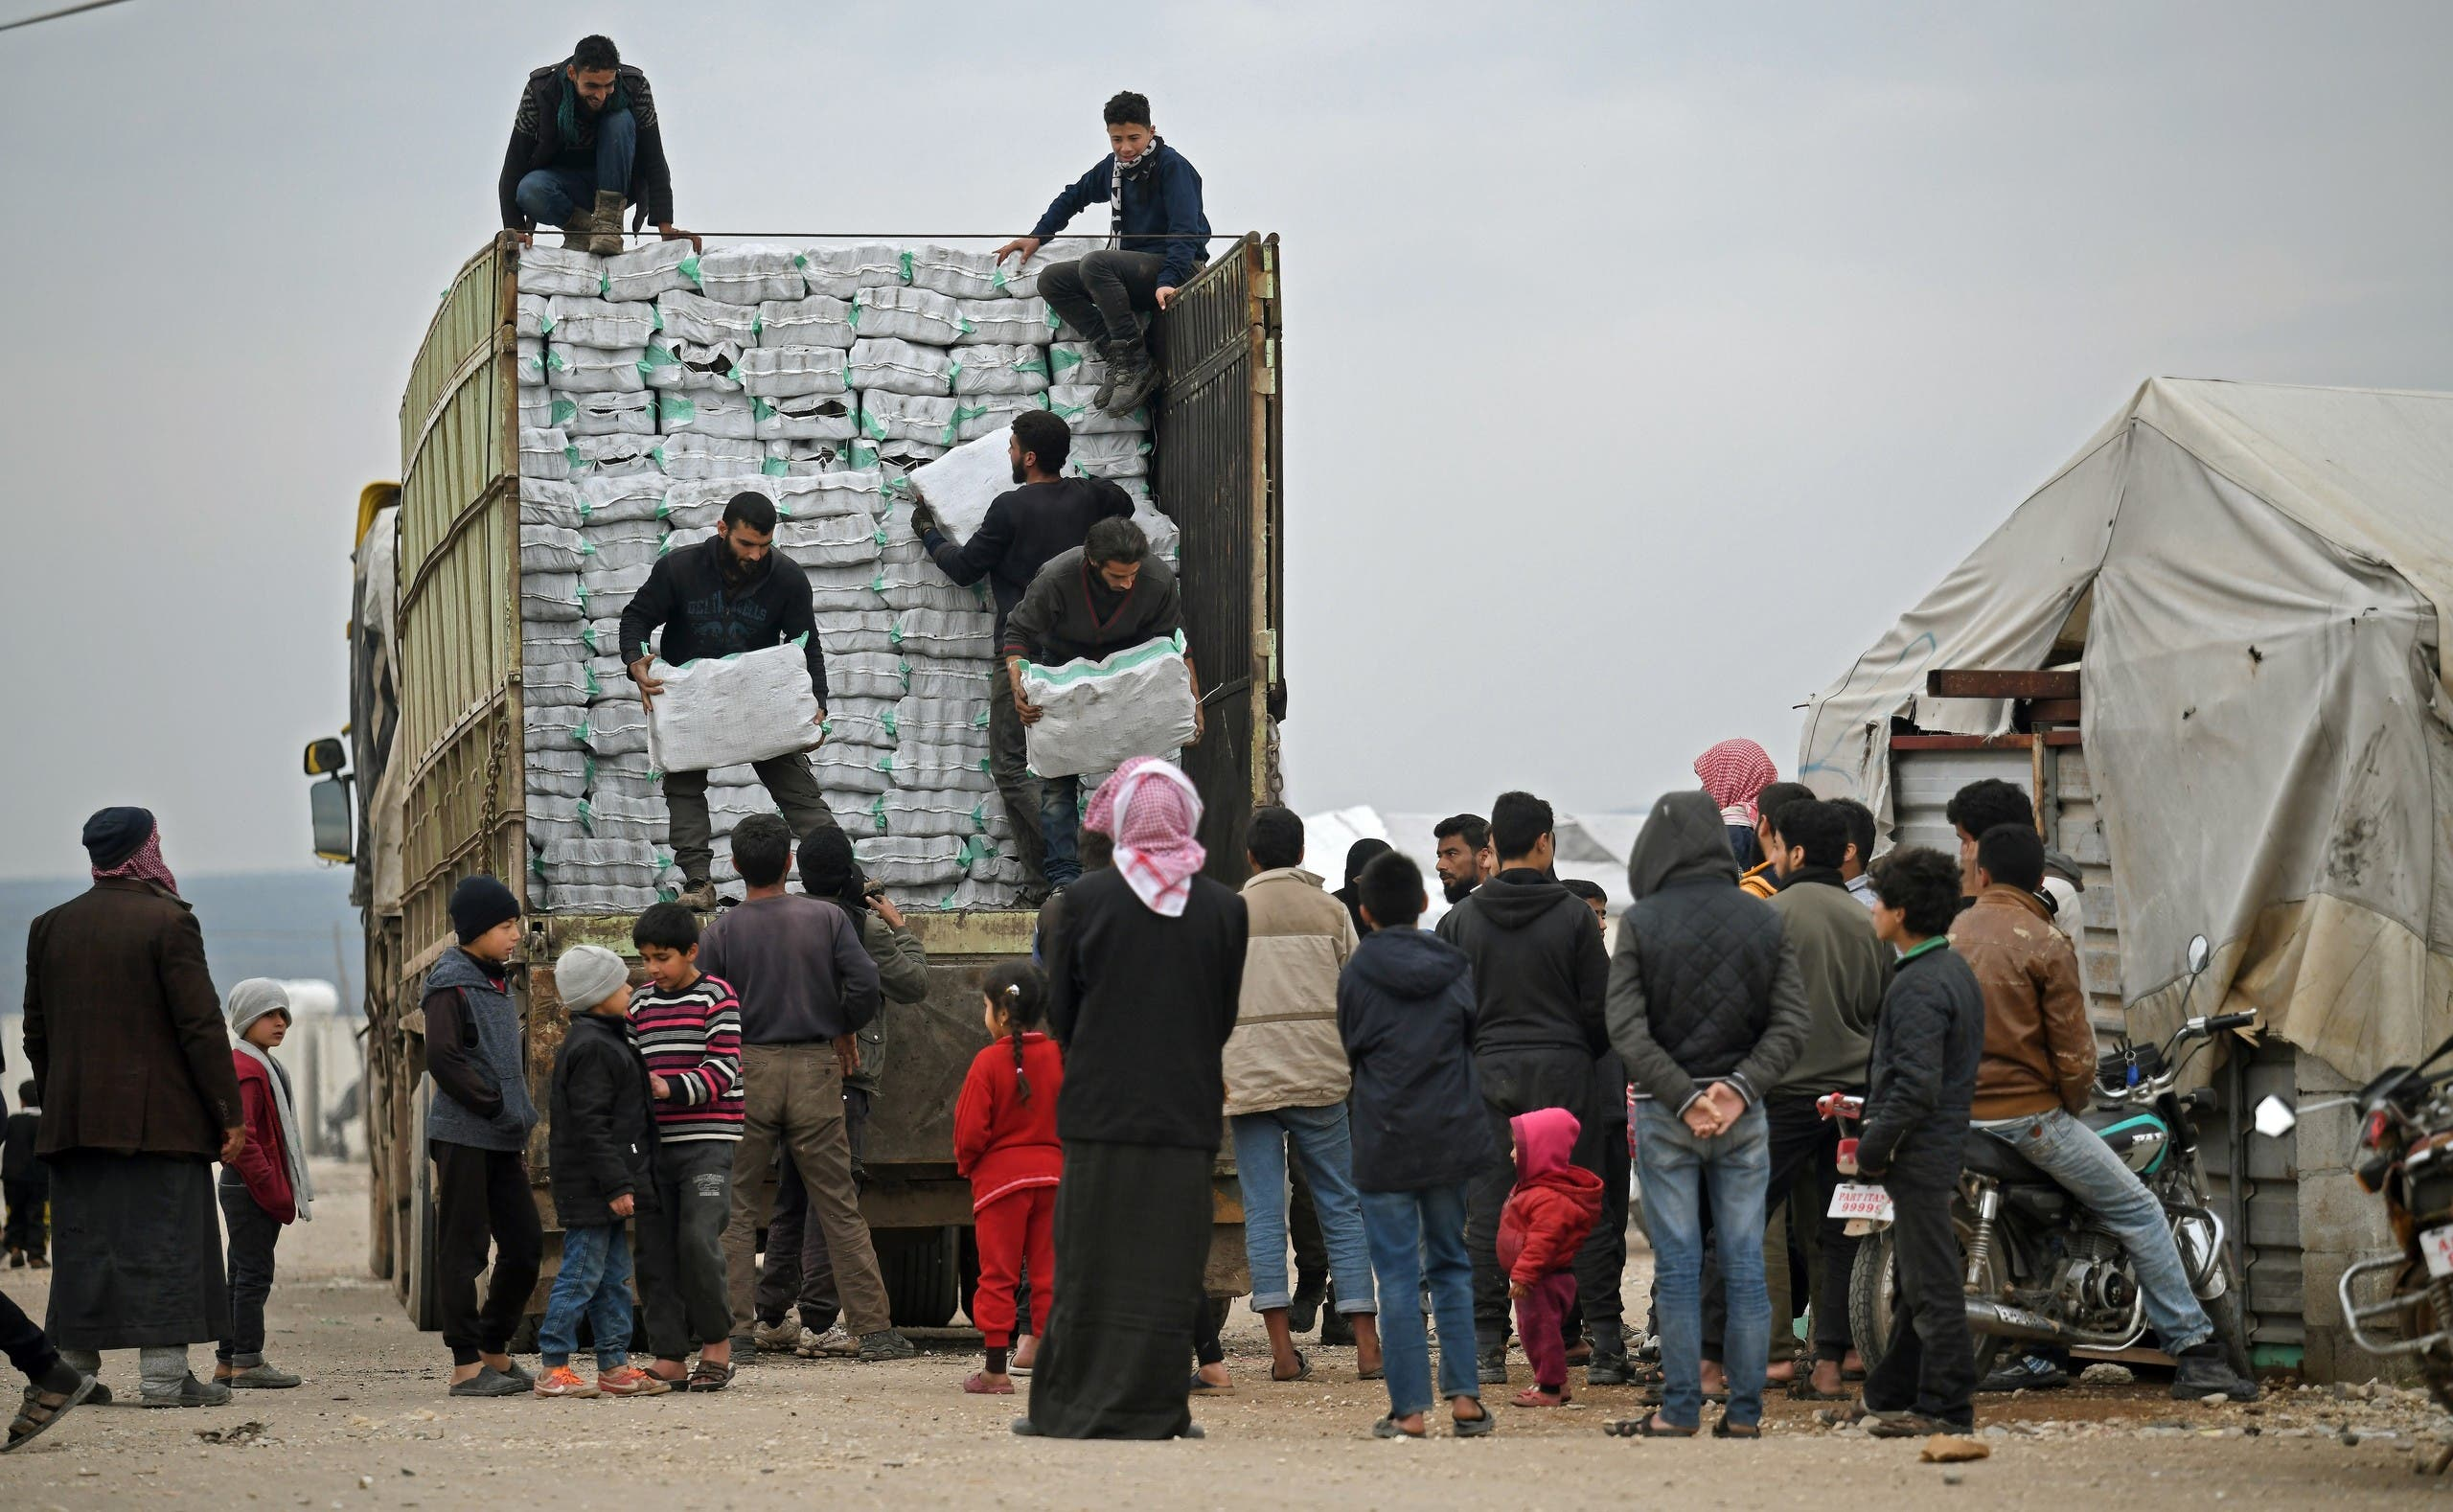 Displaced Syrians queue to receive humanitarian aid, consisting of heating material and drinking water, at a camp in the town of Mehmediye, near the town of Deir al-Ballut along the border with Turkey, on February 21, 2020.